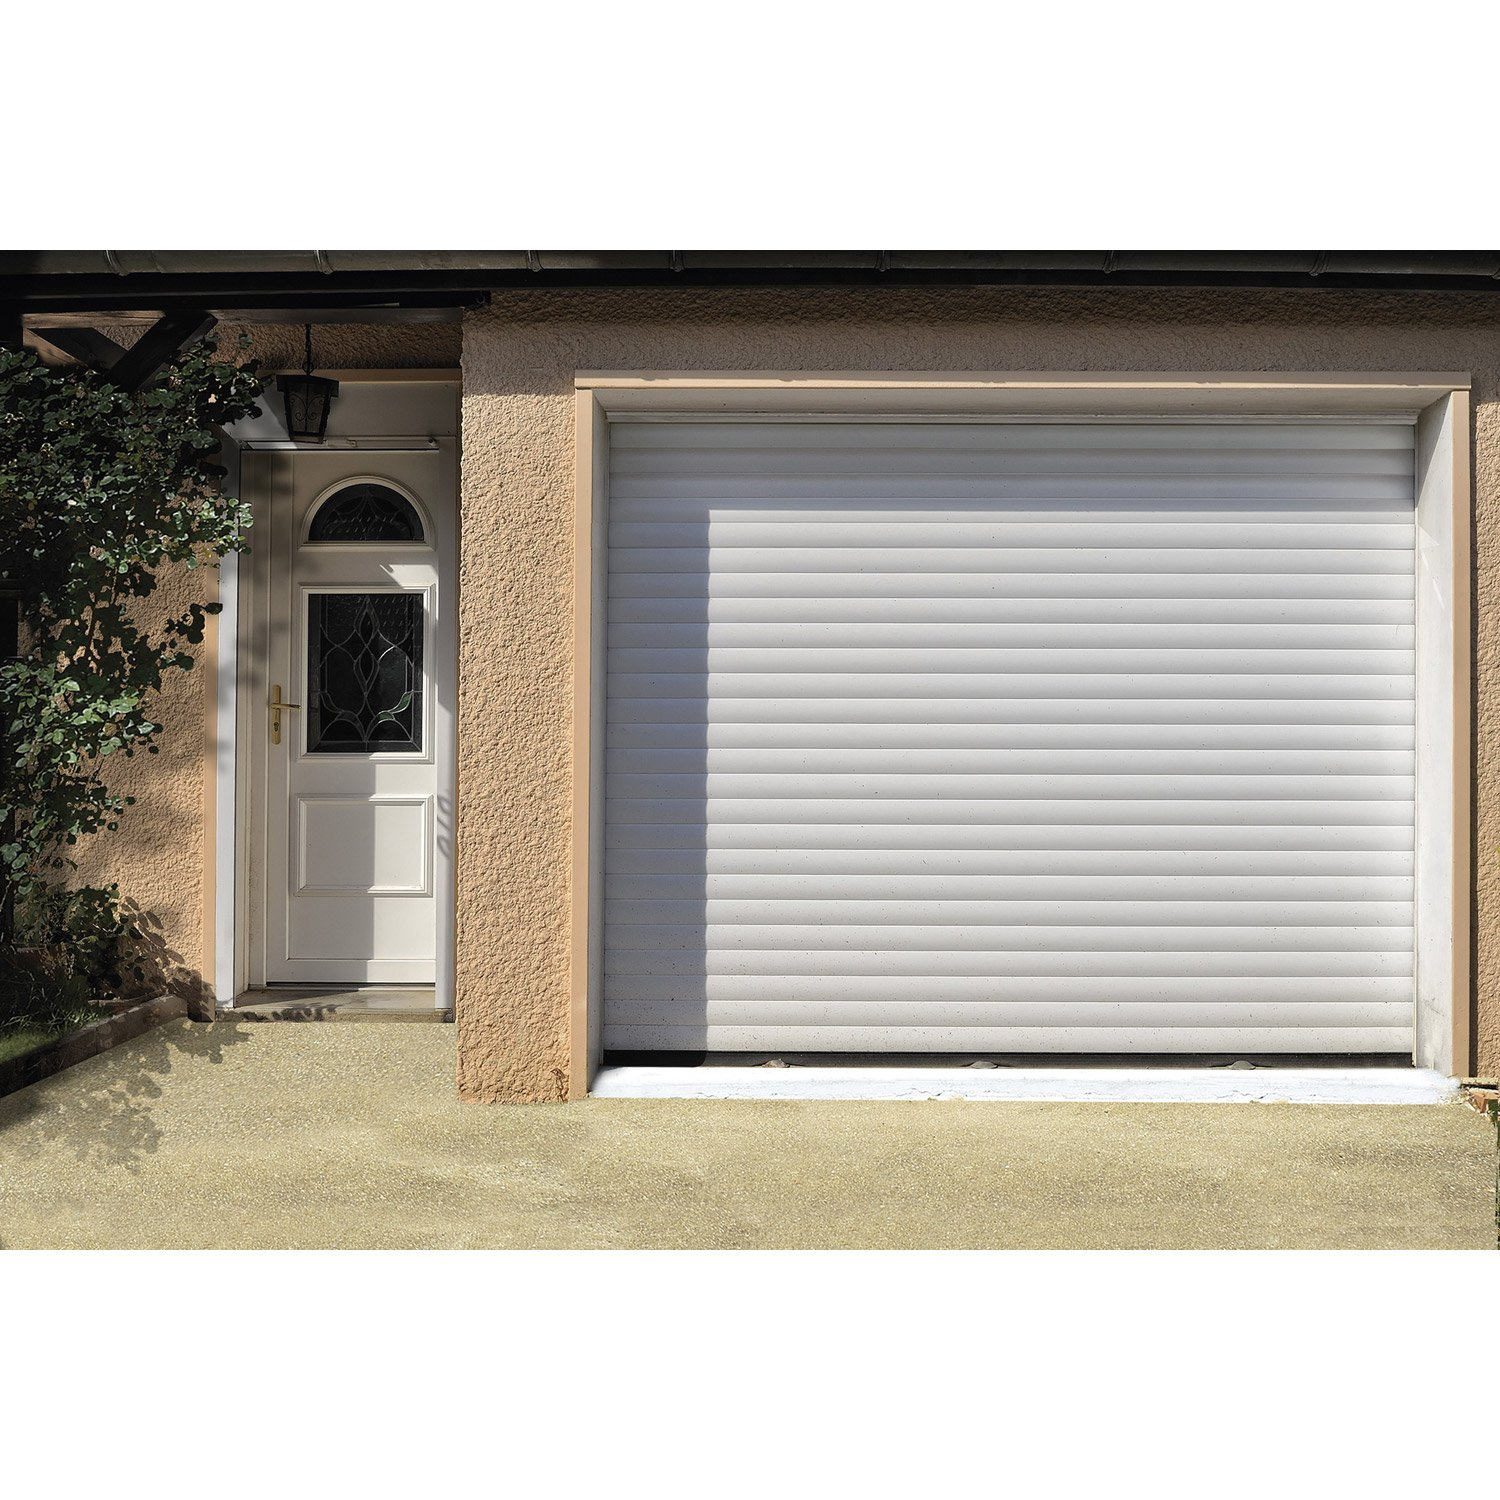 Porte de garage coulissante sur mesure leroy merlin for Leroy merlin porte garage sur mesure